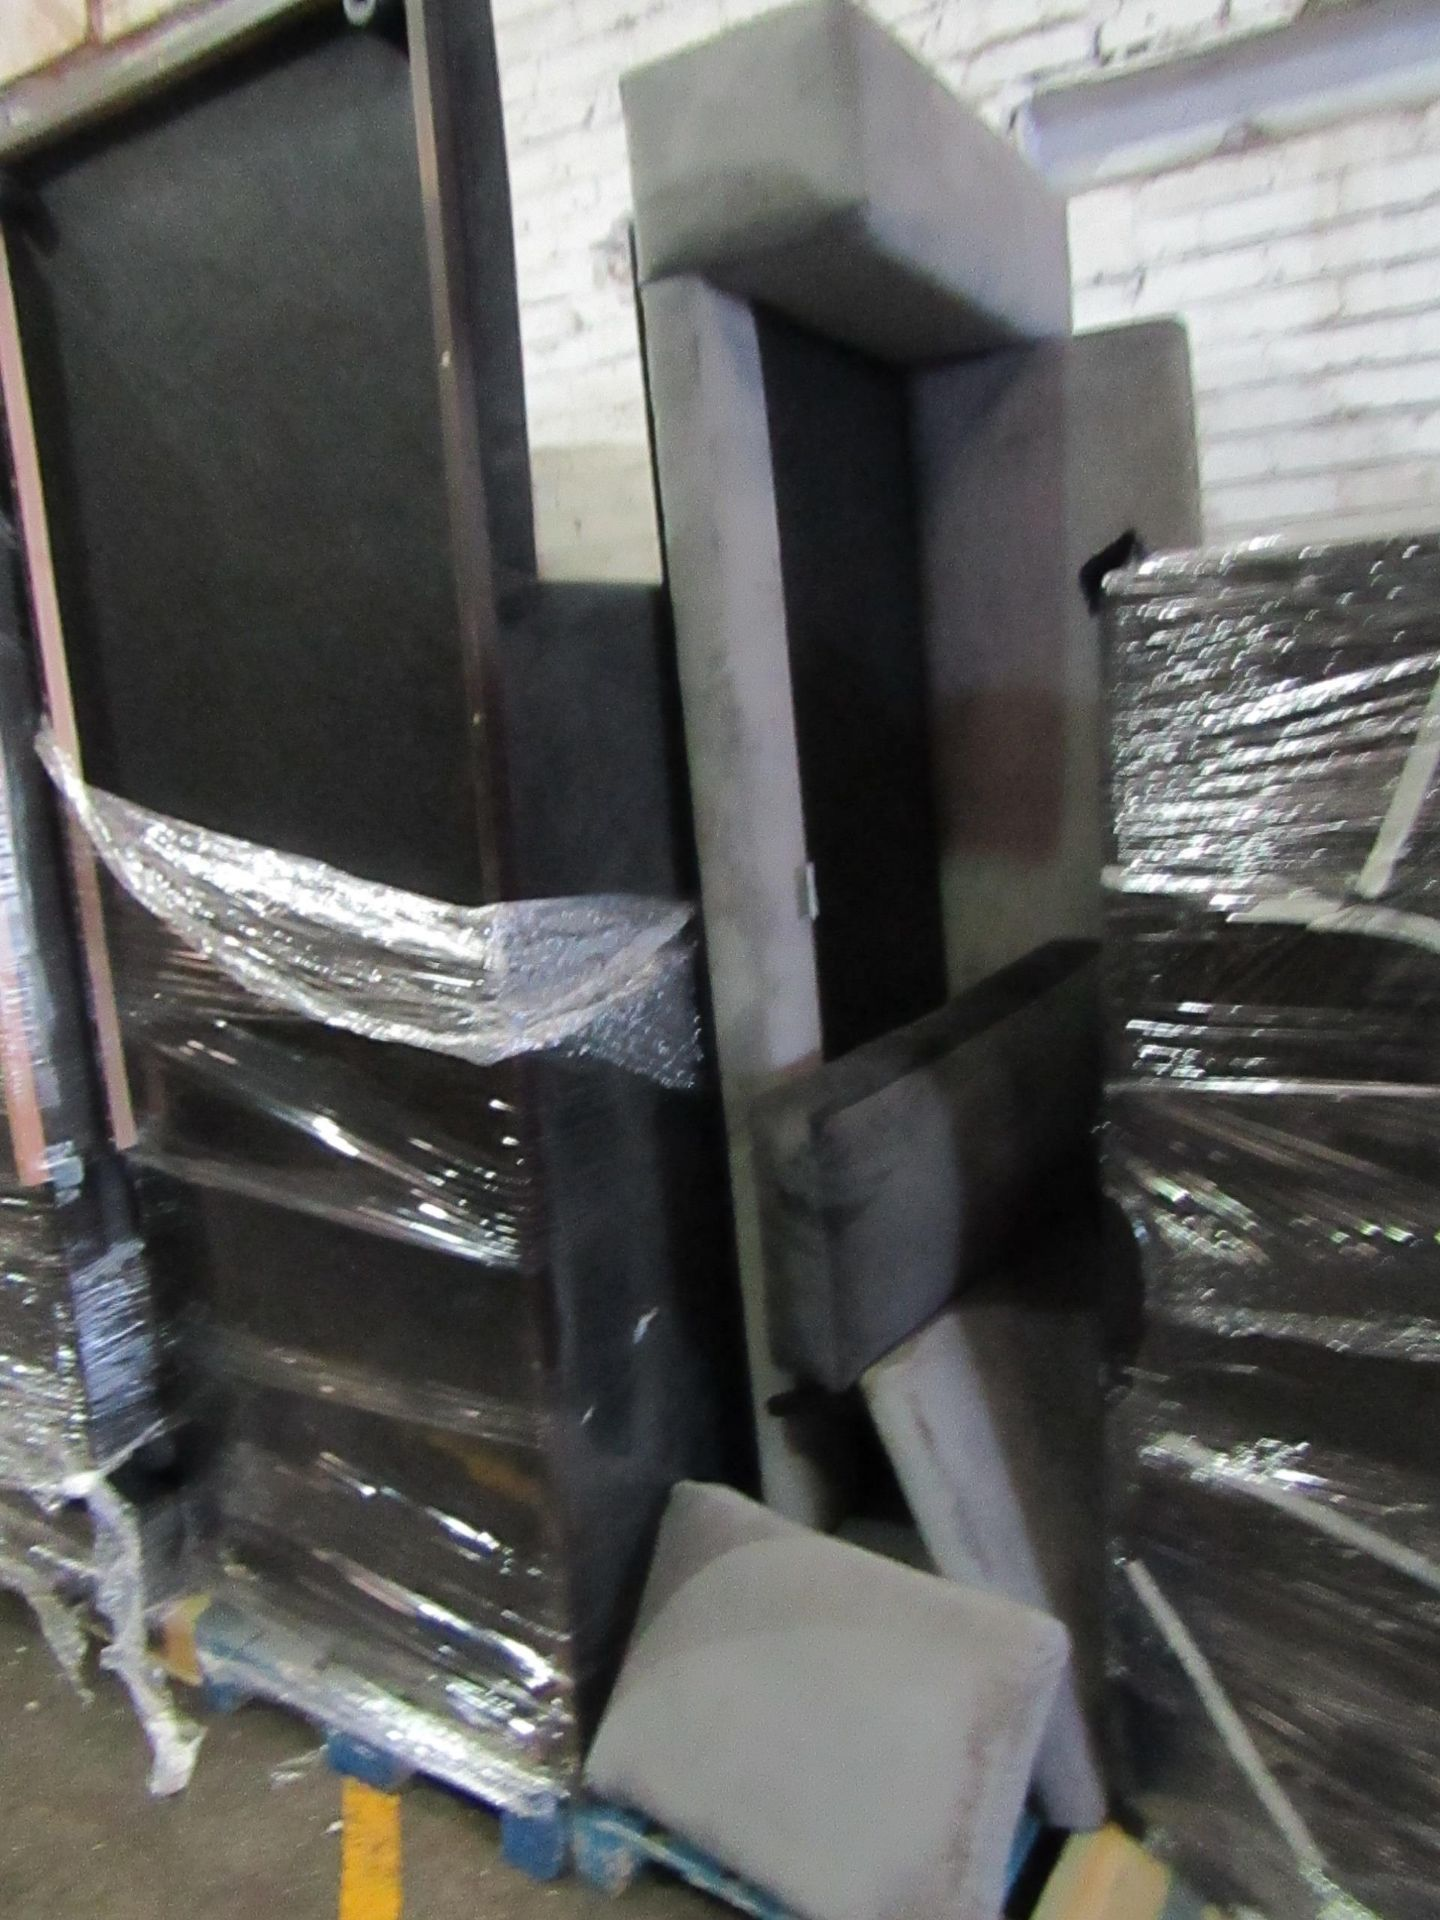 | 5X | PALLETs OF SWOON B.E.R SOFAS, UNMANIFESTED, WE HAVE NO IDEA WHAT IS ON THESE PALLETS, IF THEY - Image 5 of 5